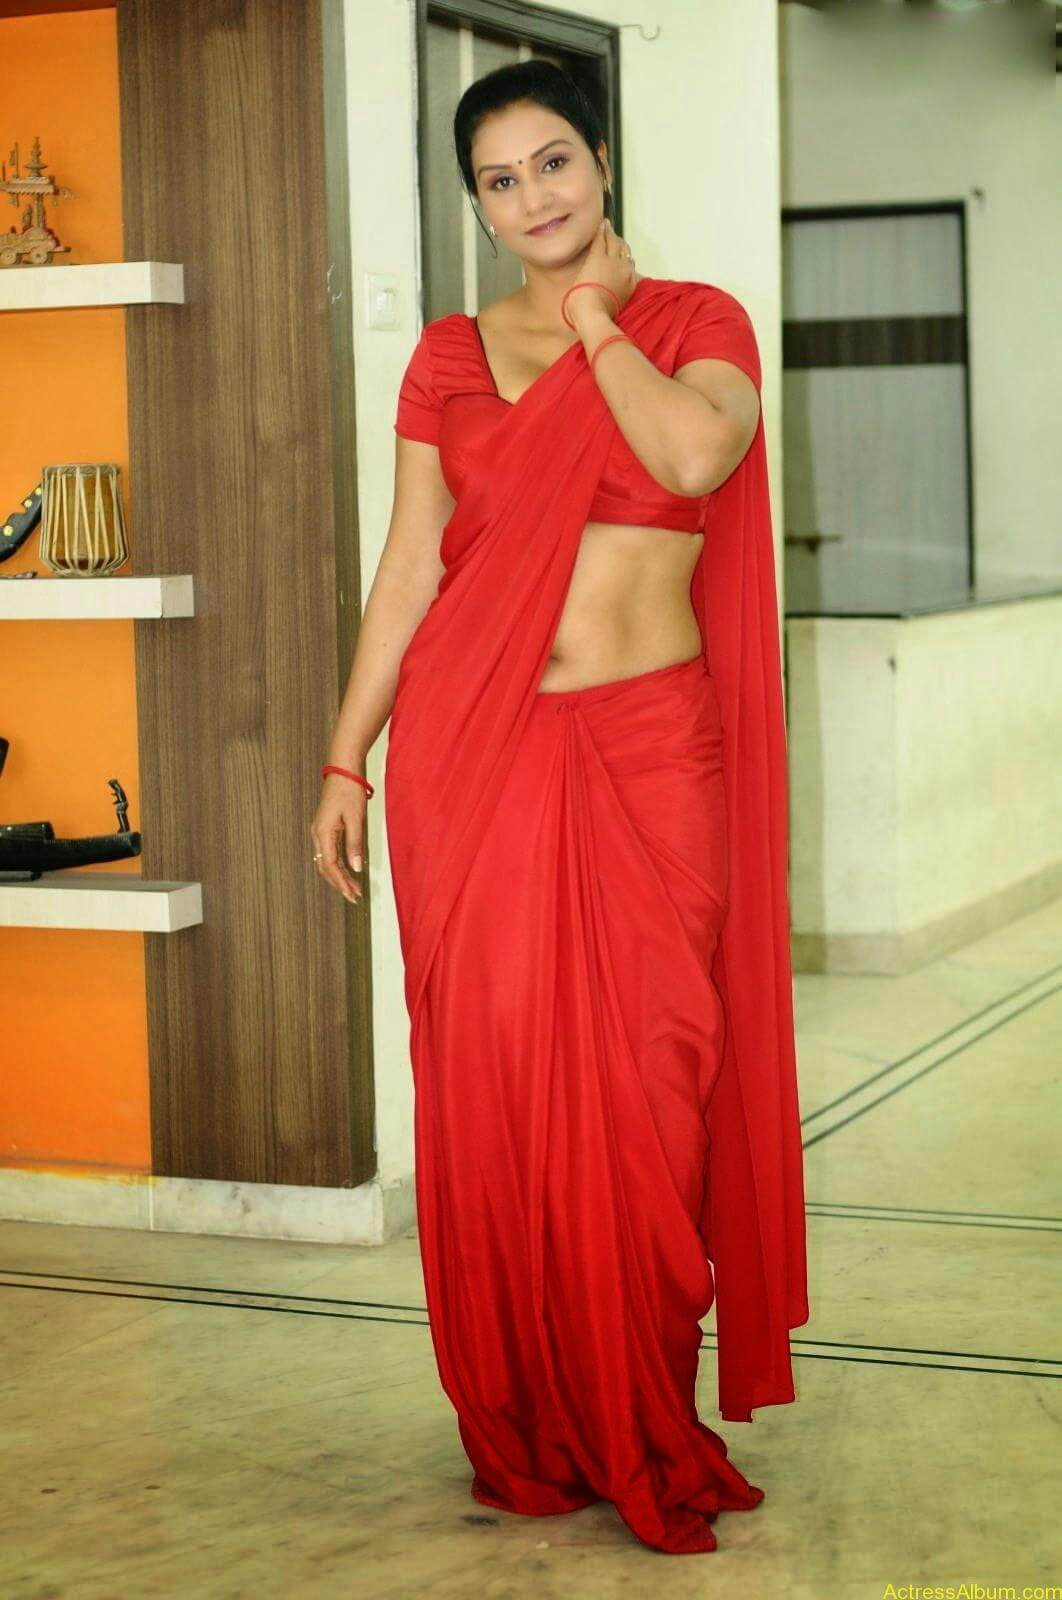 ACTRESS APOORVA VERY HOT IN RED SAREE PHOTO COLLECTION 4